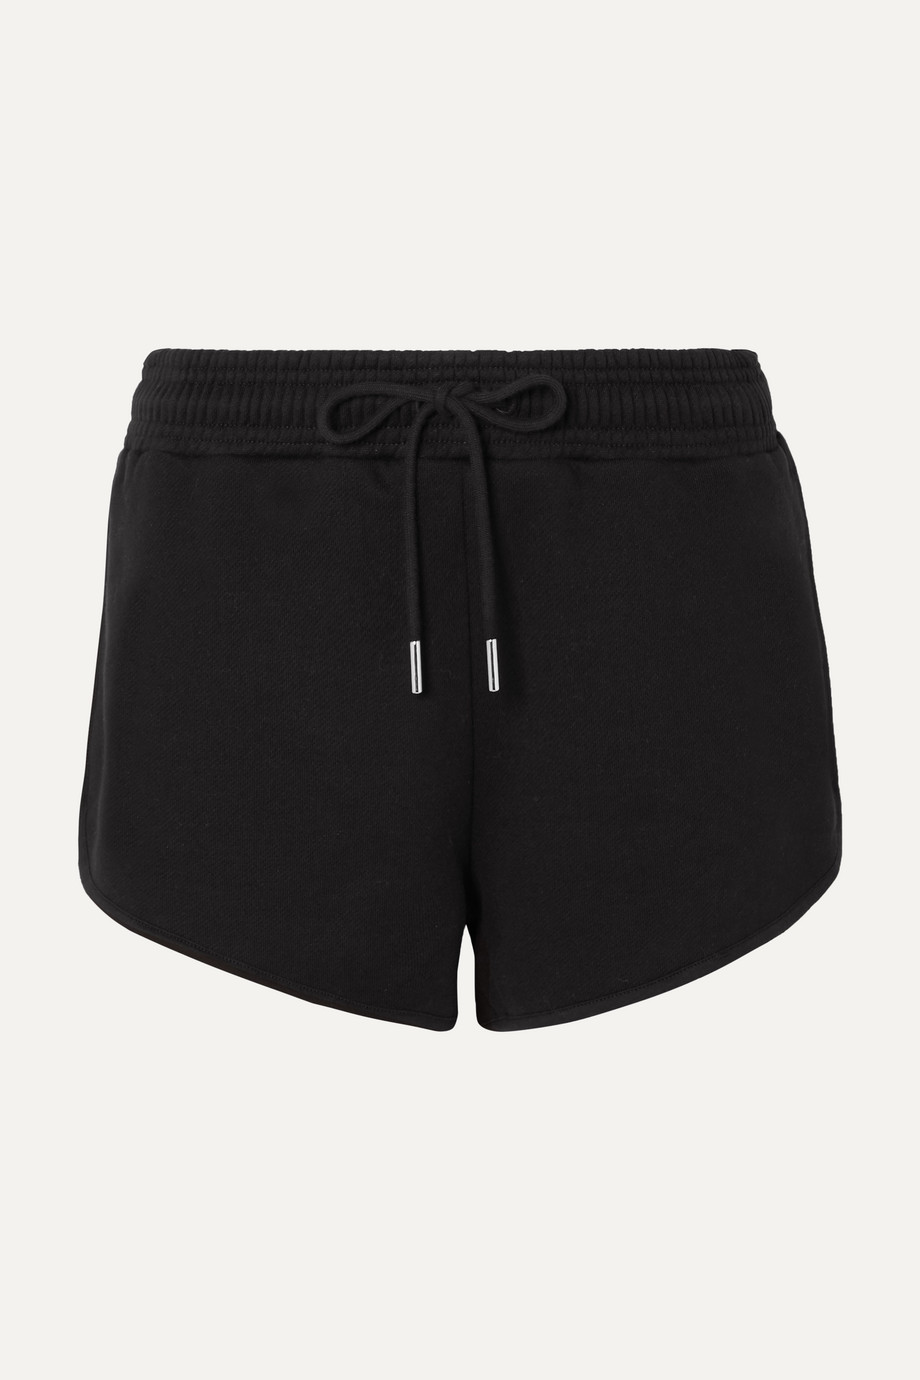 Ninety Percent + NET SUSTAIN Farrah organic cotton-jersey shorts